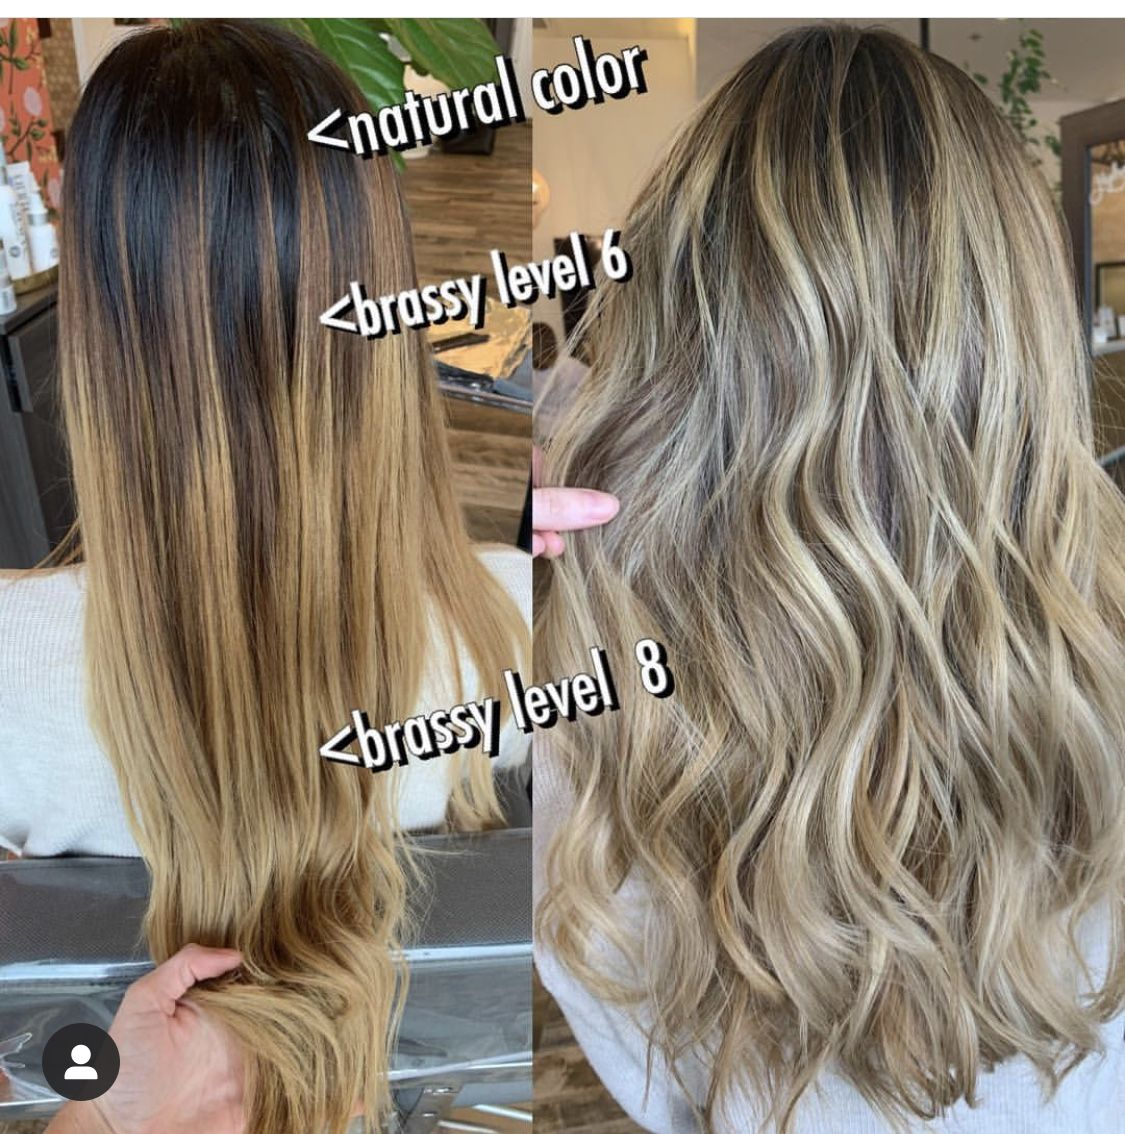 The Ultimate Answer To Why Blonde Hair Turns Yellow Or Brassy